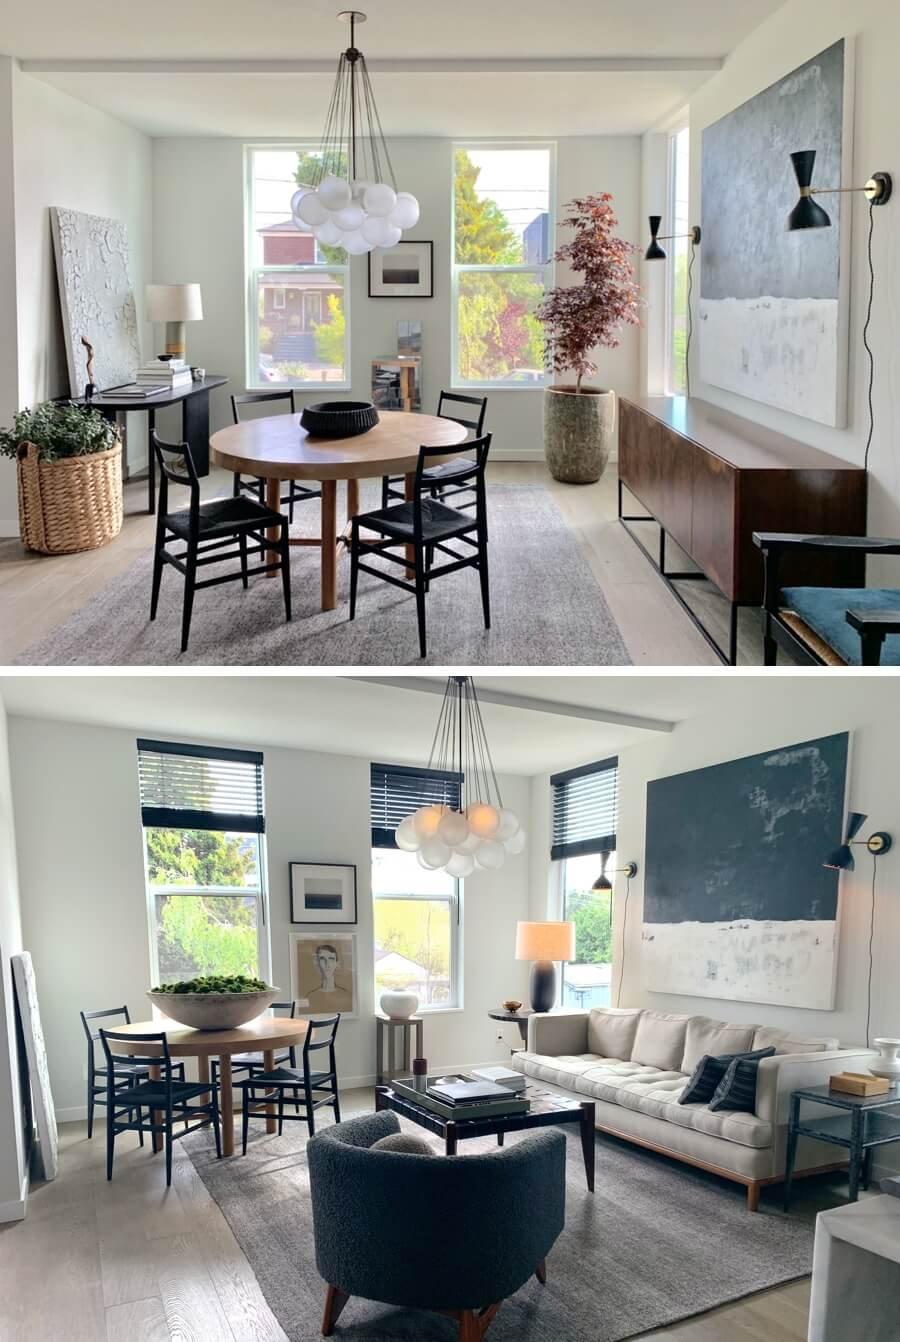 Interior designer Brian Paquette's transformed sitting room in Seattle, Washington